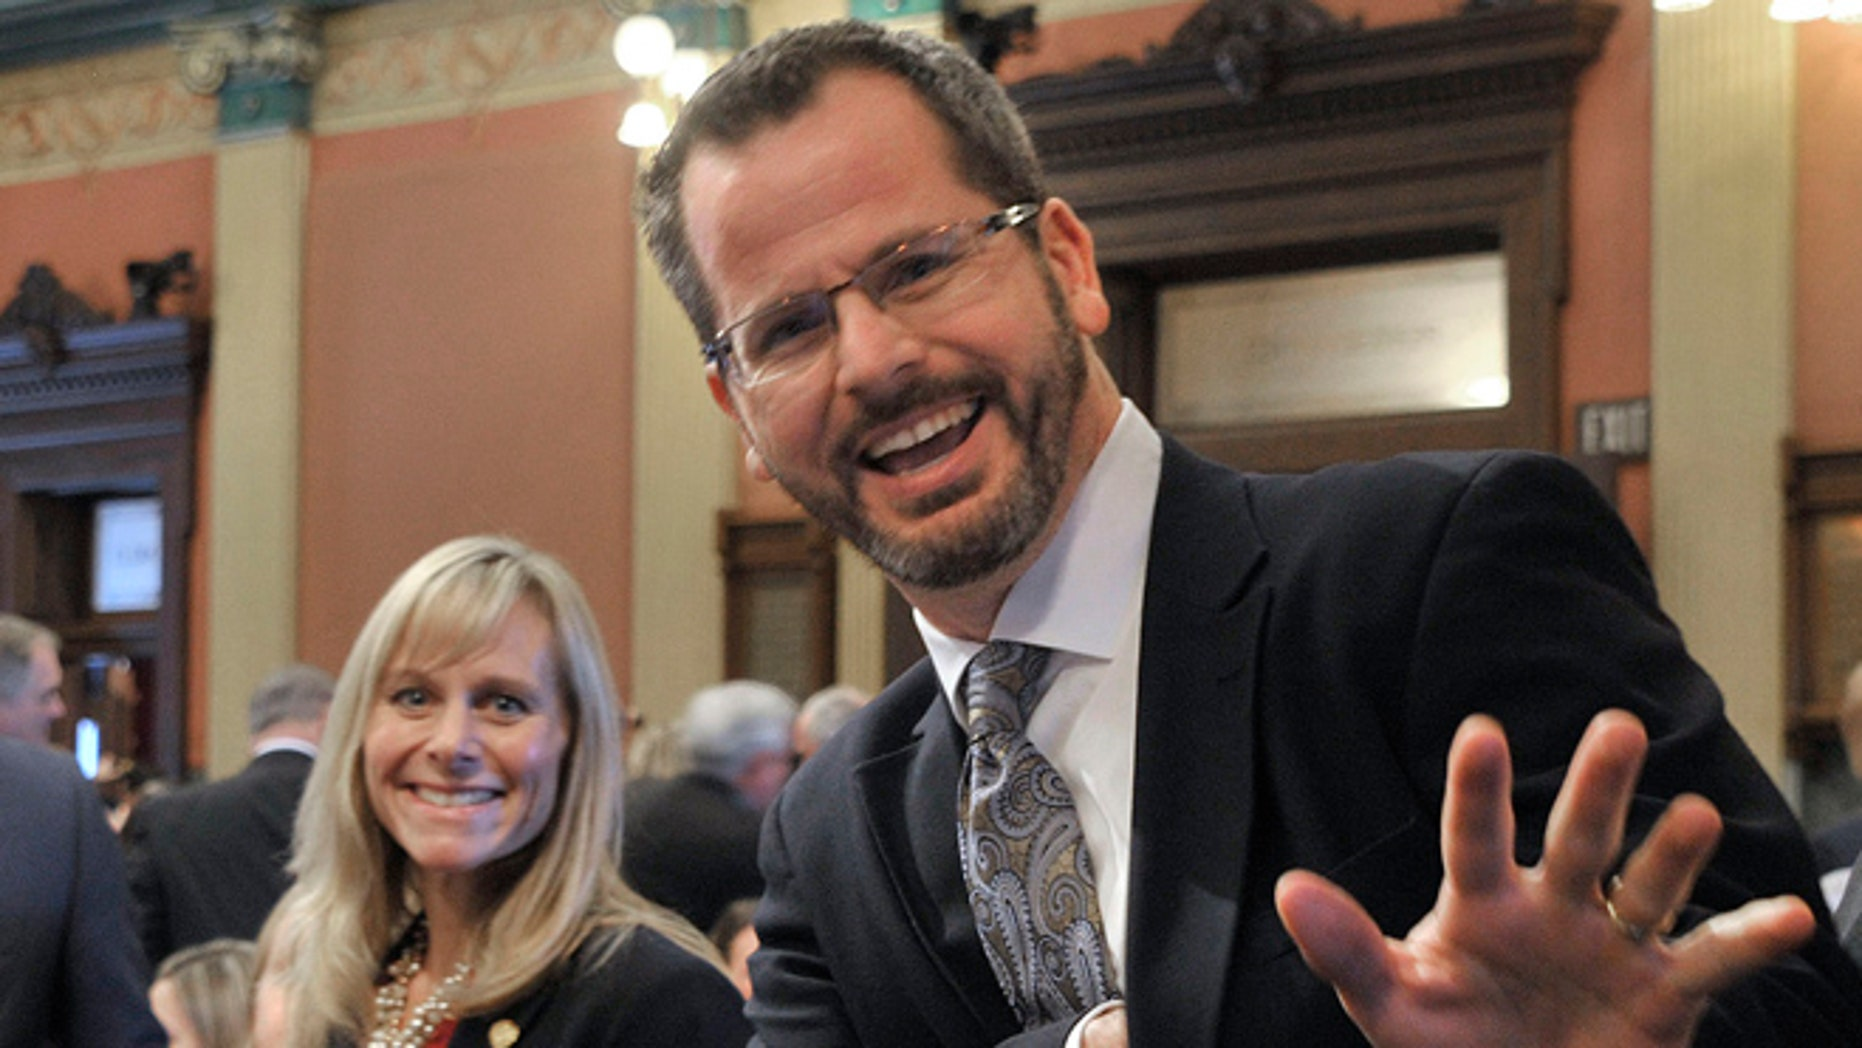 In this Jan. 14, 2015 photo, Michigan state Rep. Cindy Gamrat and state Rep. Todd Courser wave to reporters in the House of Representatives in Lansing.